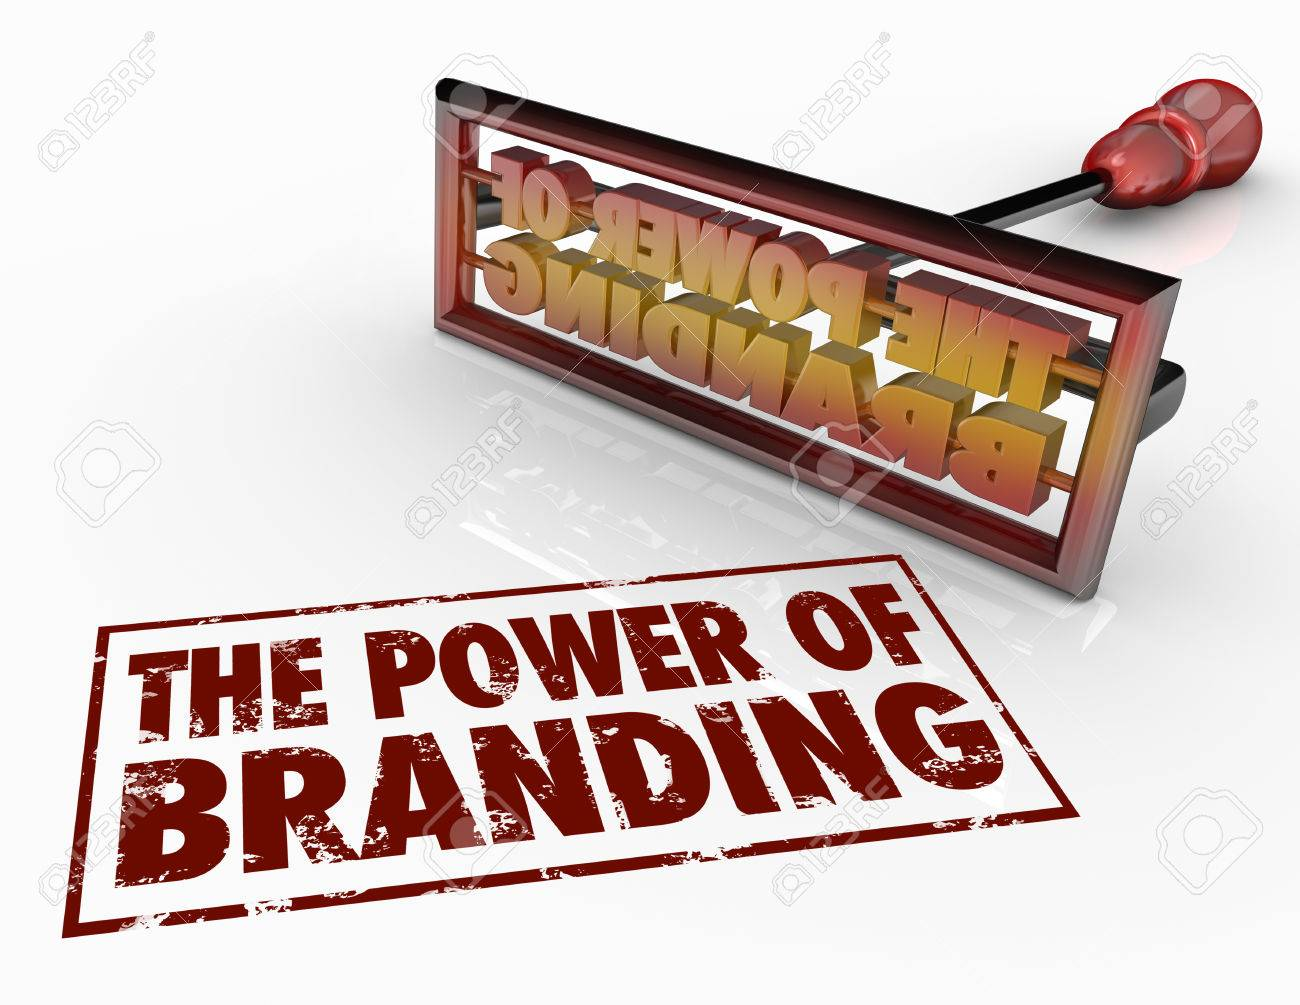 The Power of Branding words and a brand iron to illustrate trust, loyalty, identity and marketing awareness - 29496879